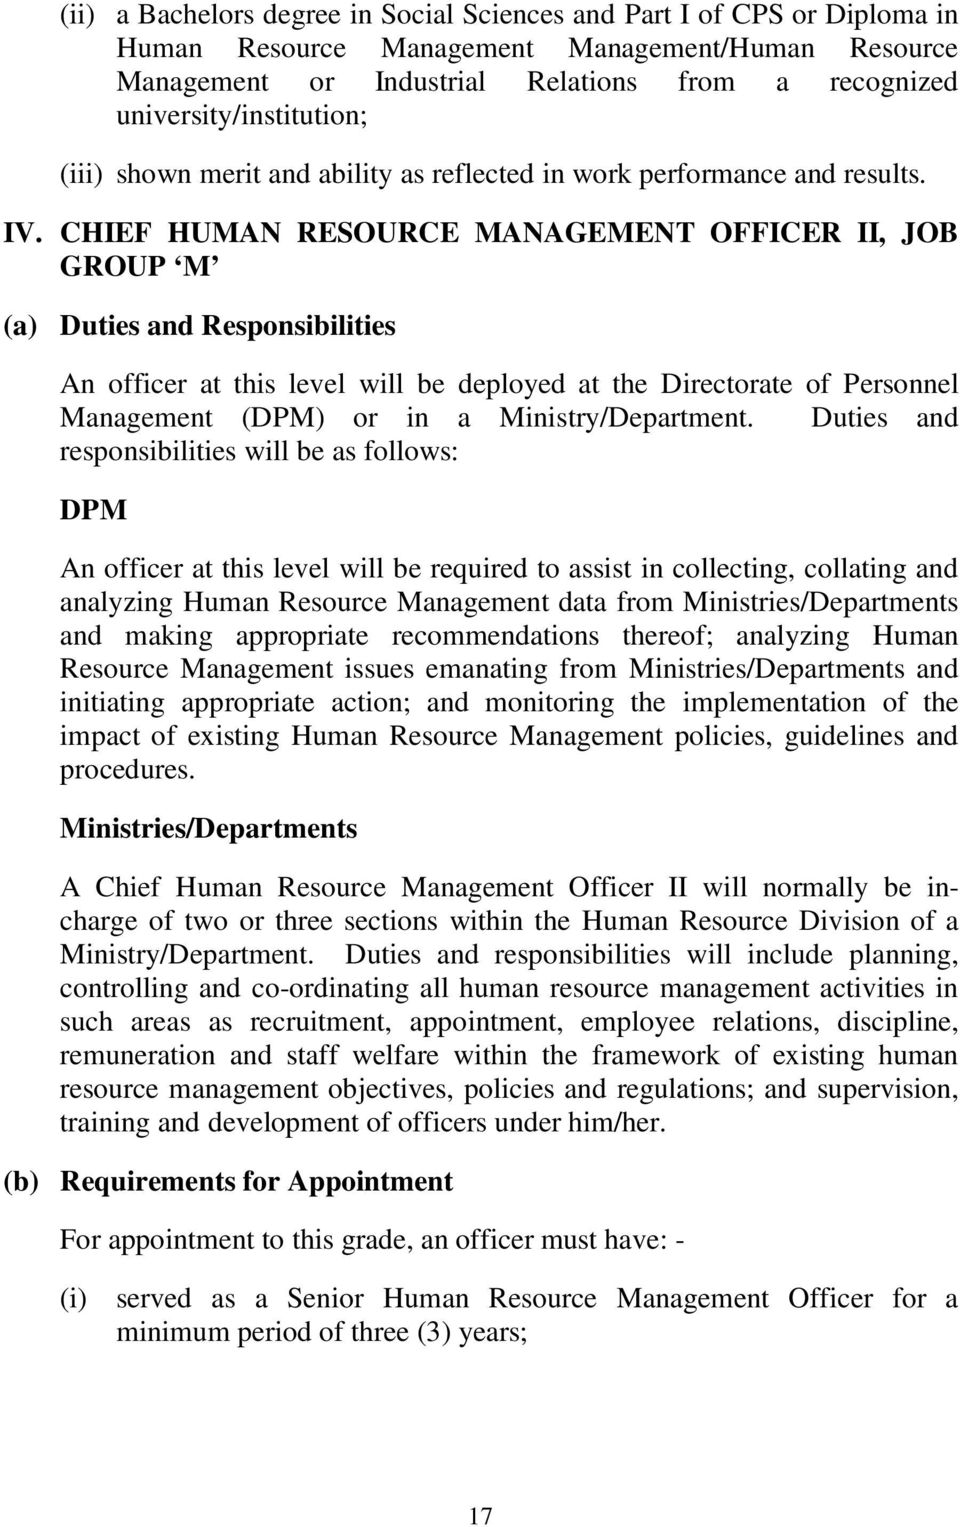 CHIEF HUMAN RESOURCE MANAGEMENT OFFICER II, JOB GROUP M An officer at this level will be deployed at the Directorate of Personnel Management (DPM) or in a Ministry/Department.